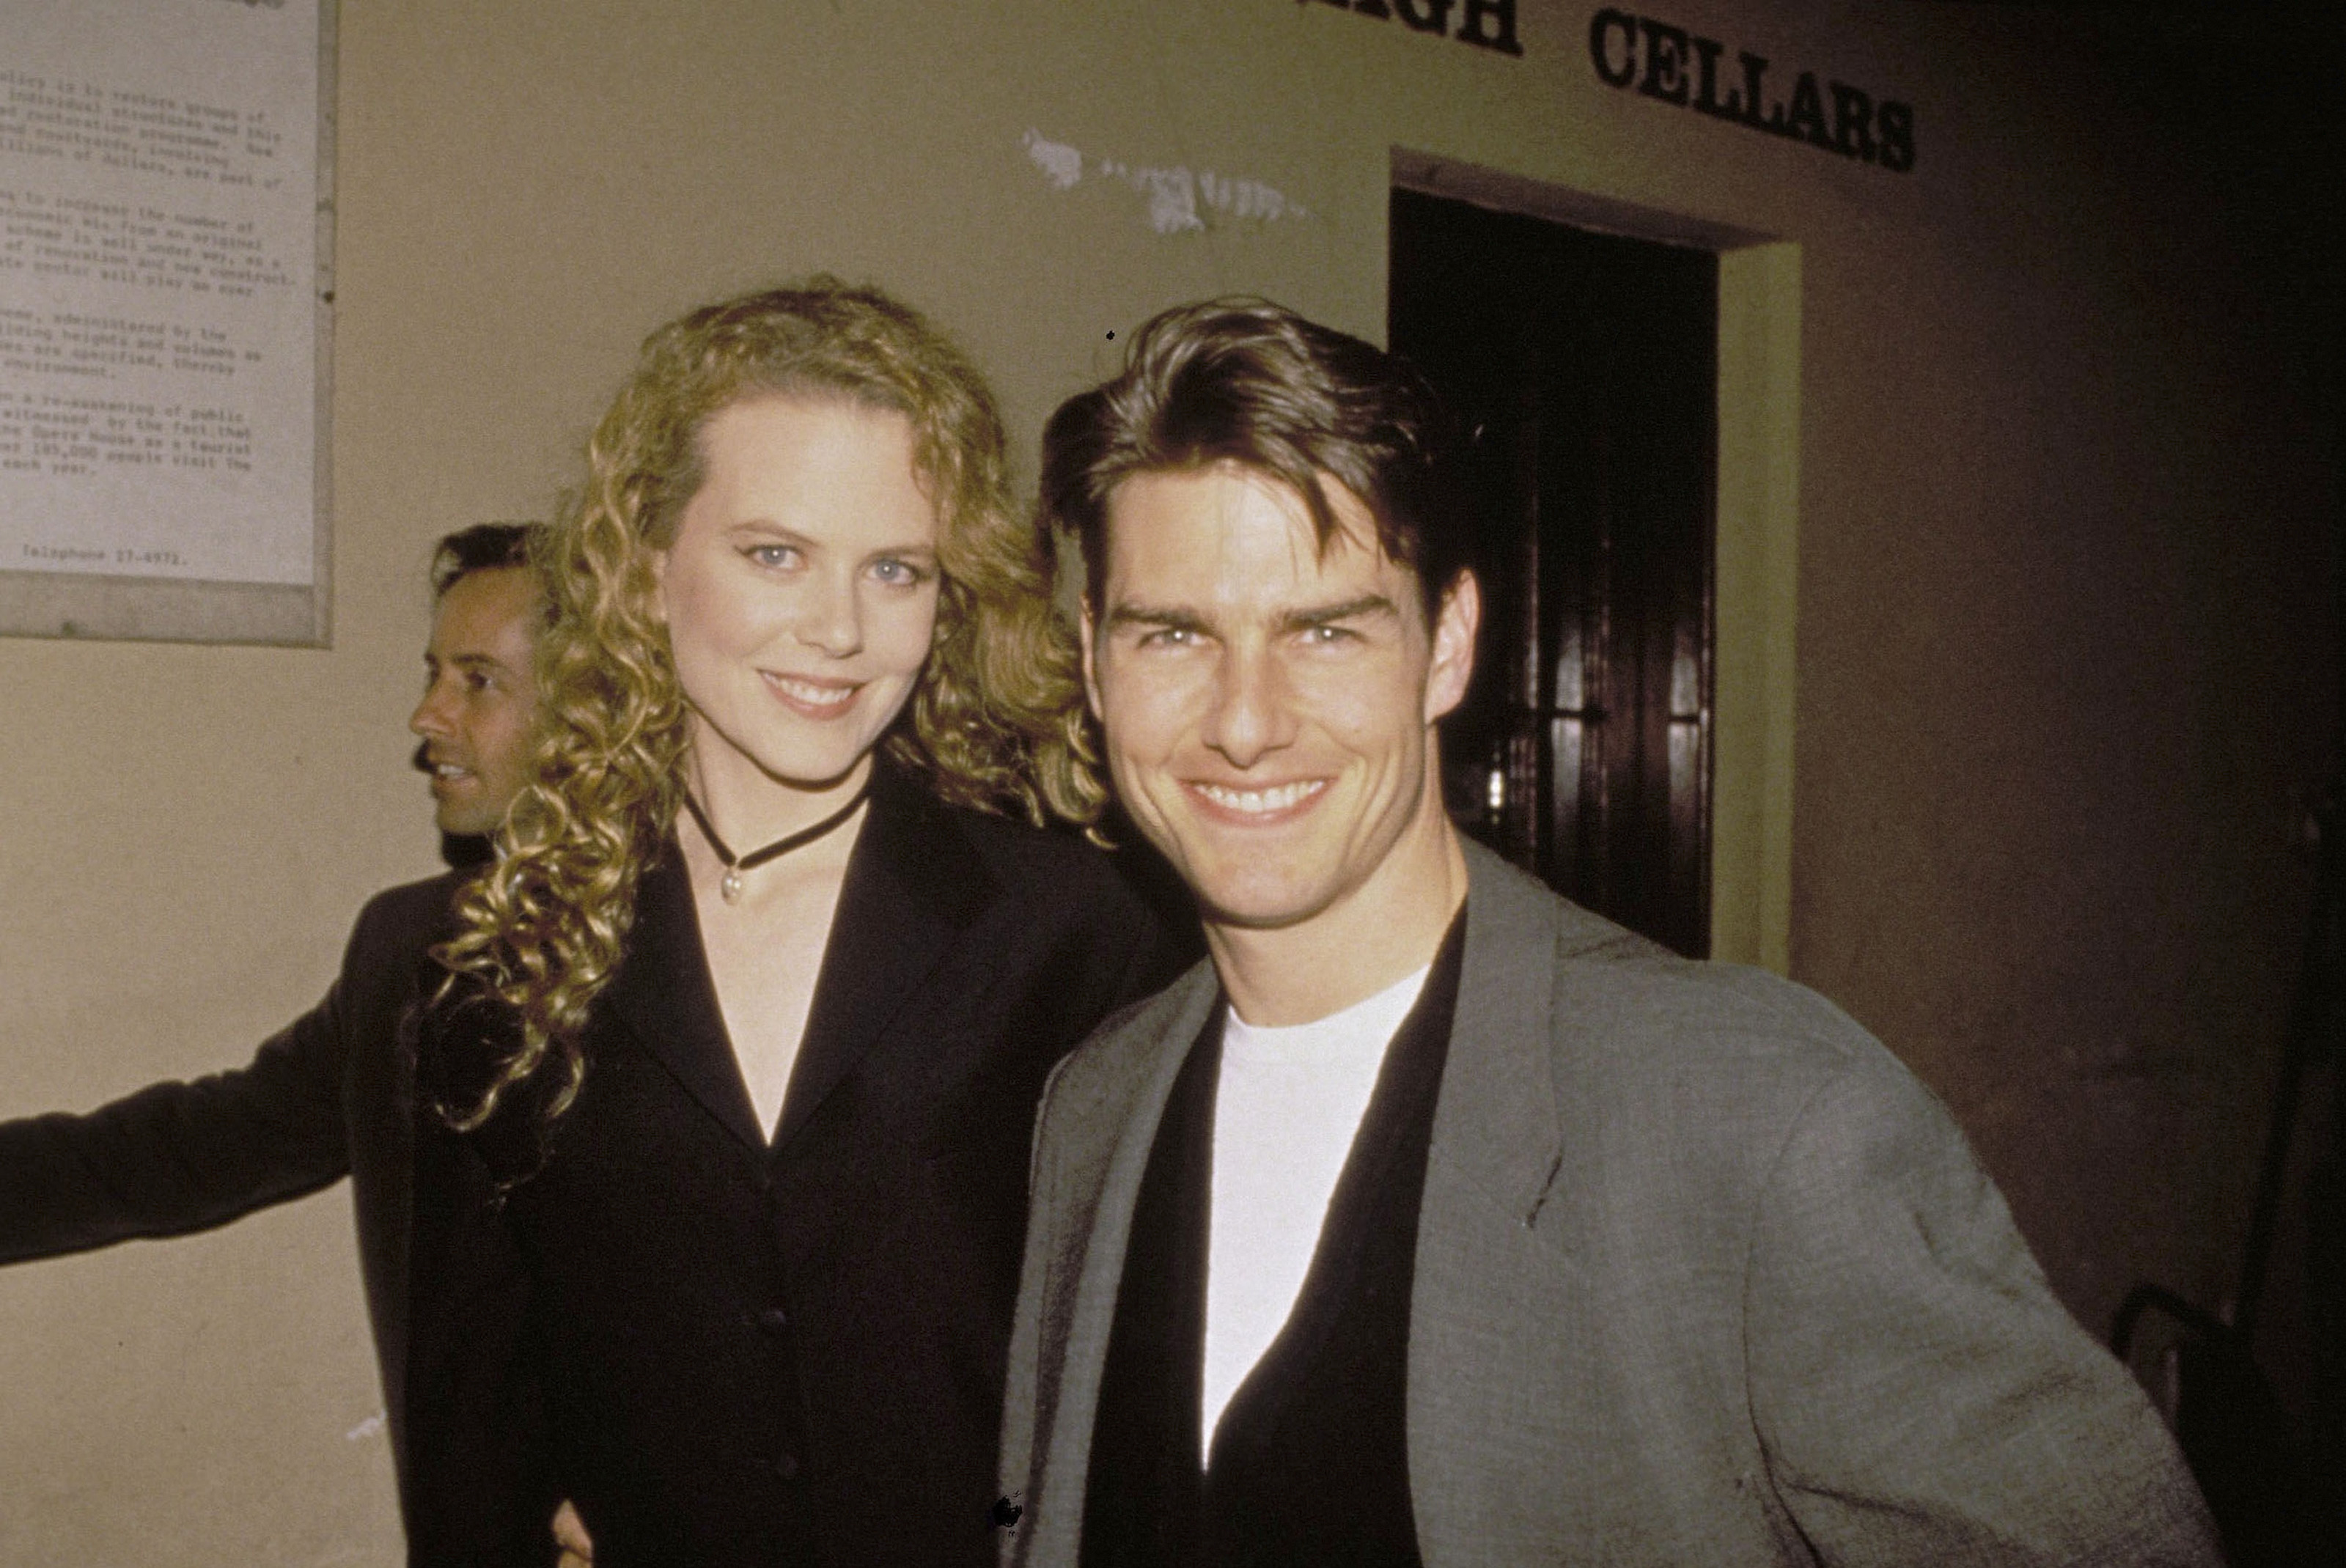 AUSTRALIAN ACTRESS NICOLE KIDMAN AND ACTOR HUSBAND TOM CRUISE OUT IN SYDNEY.